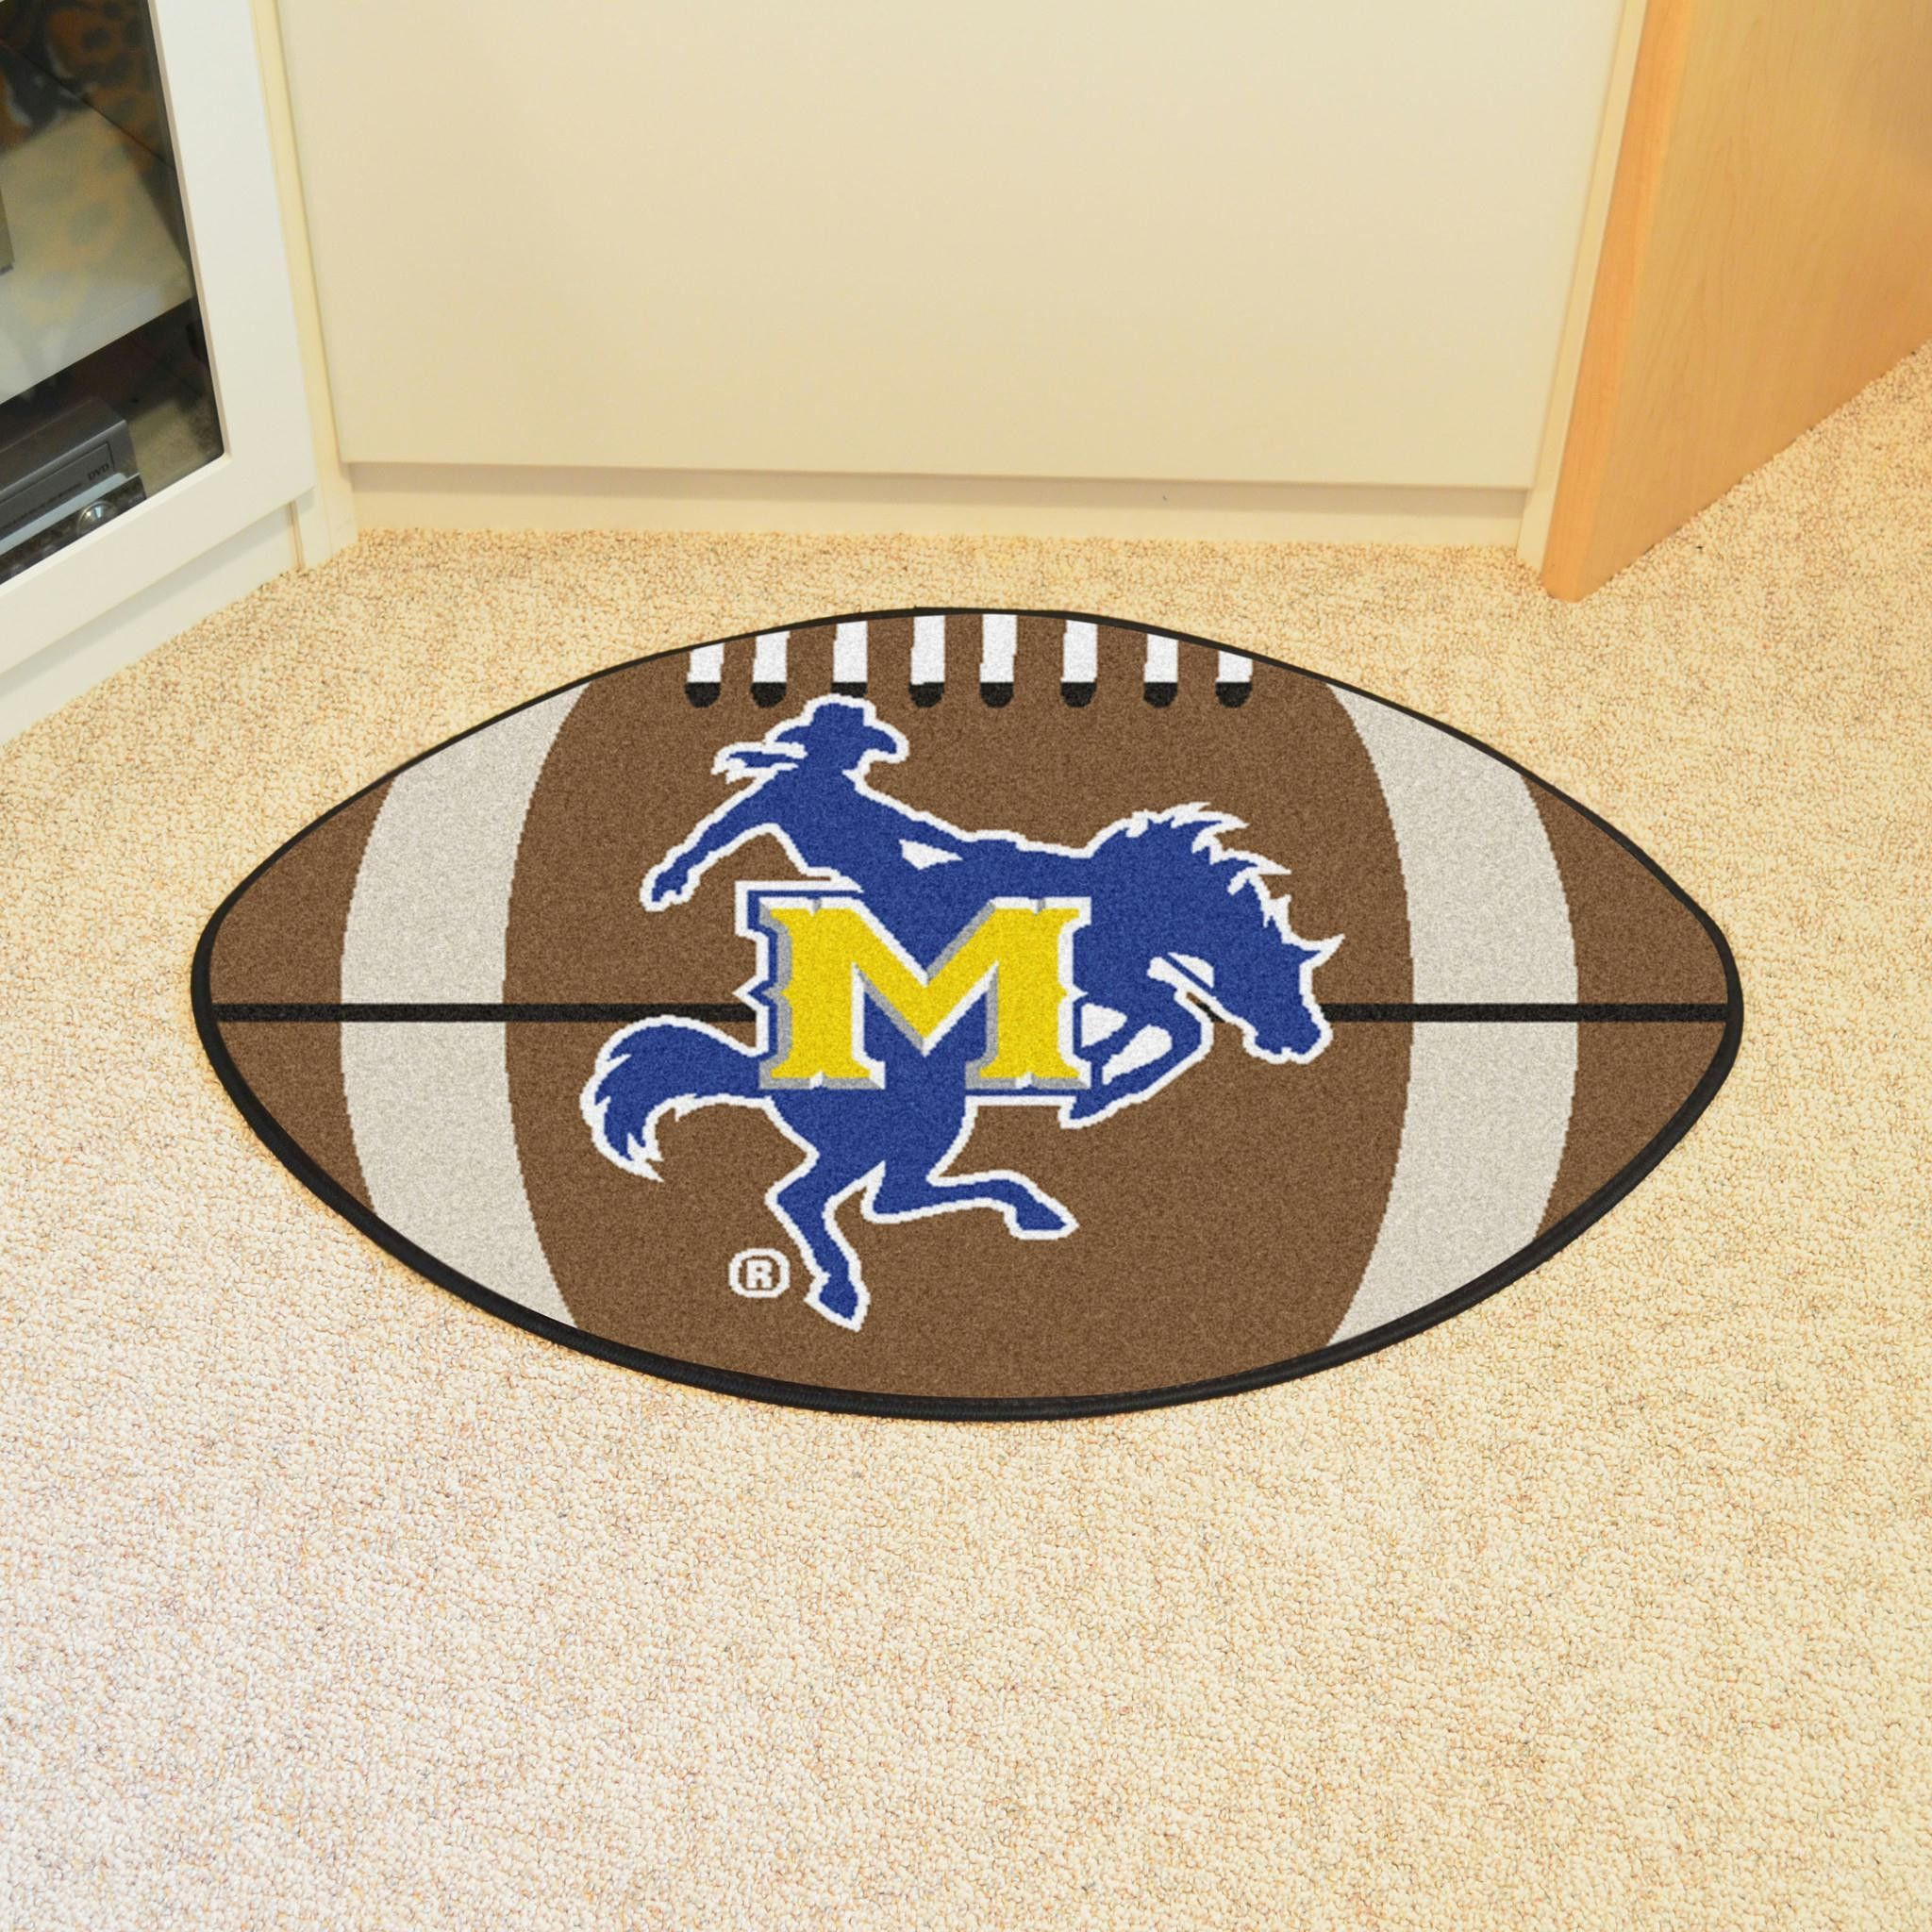 22eb1406d45 McNeese State Football Rug 20.5x32.5